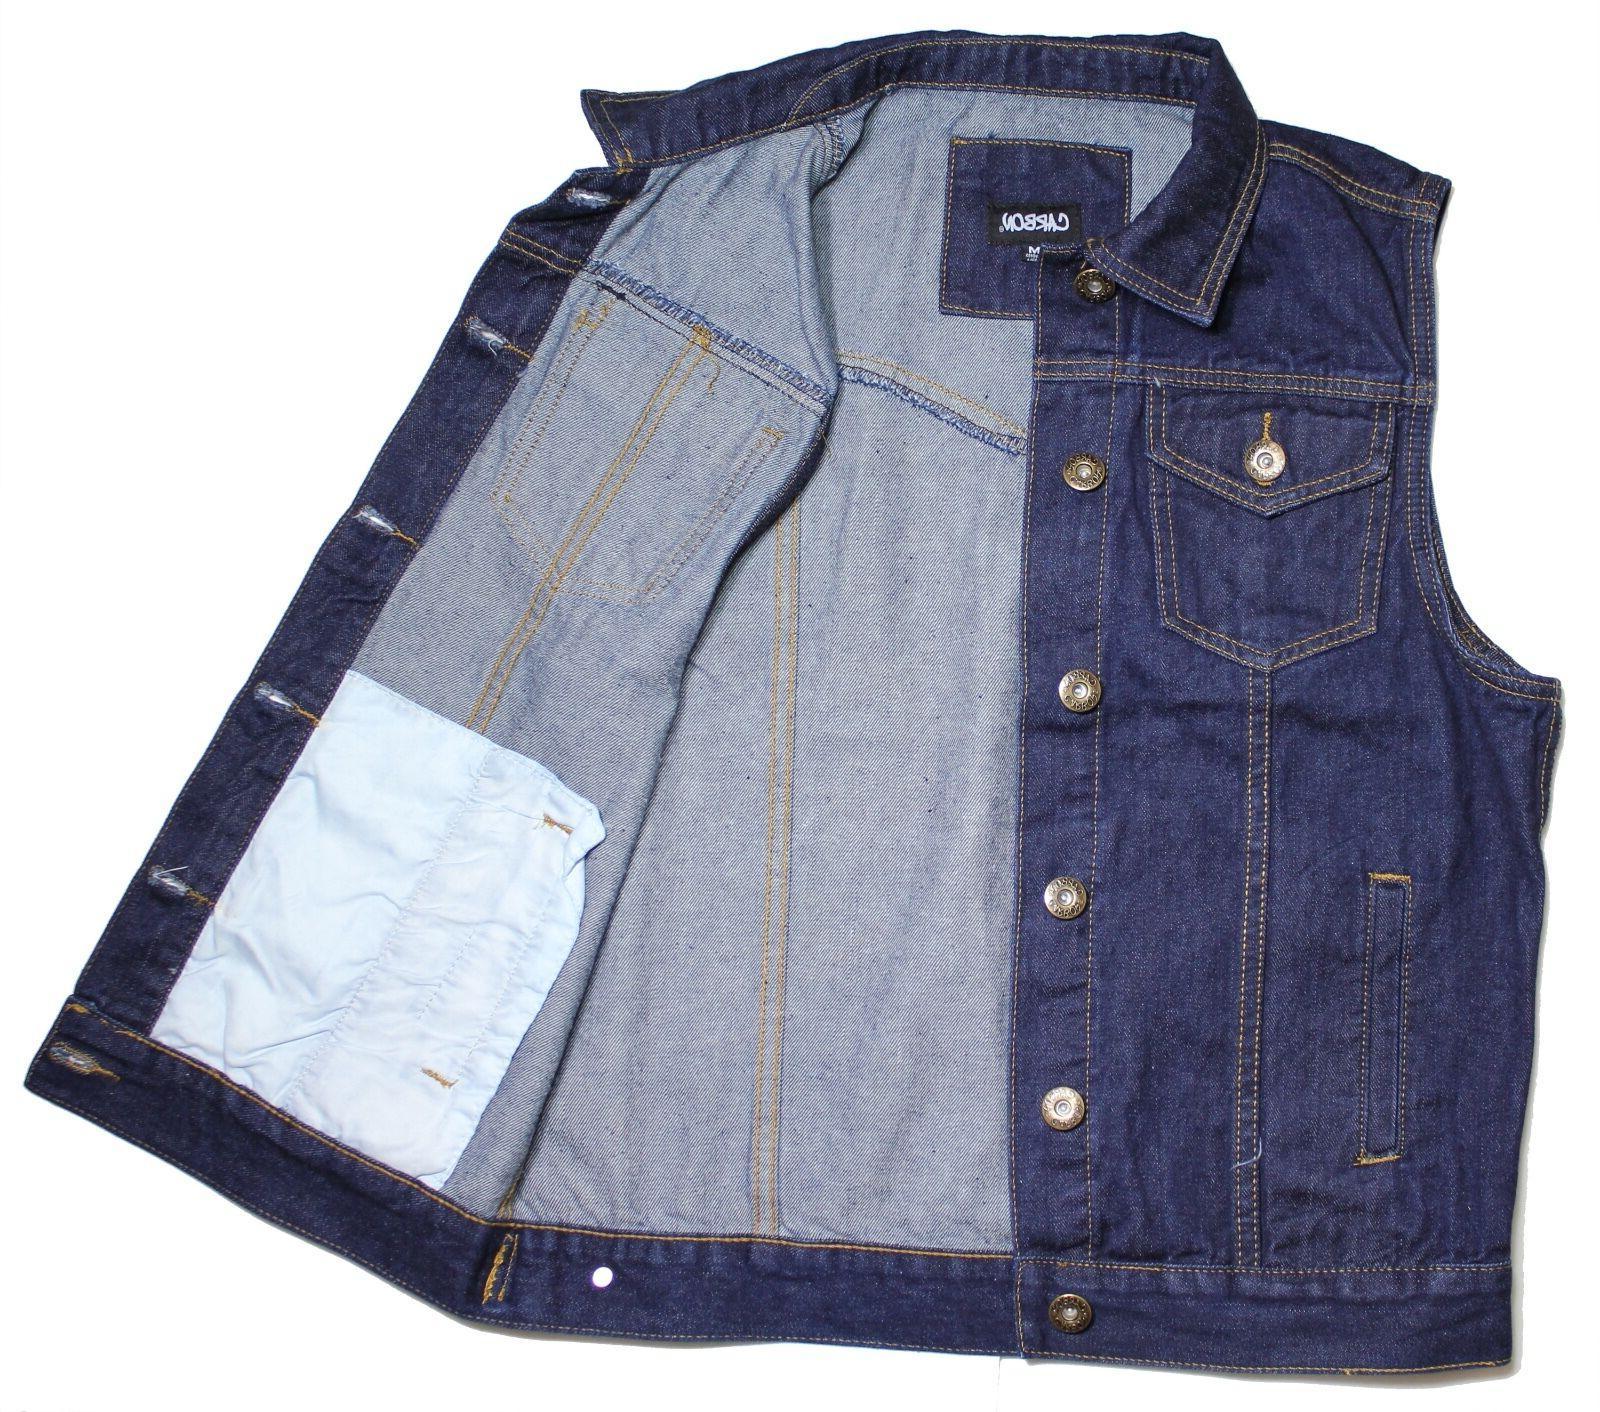 Vest dk.Blue Denim jean biker motorcycle jacket Sleeveless m